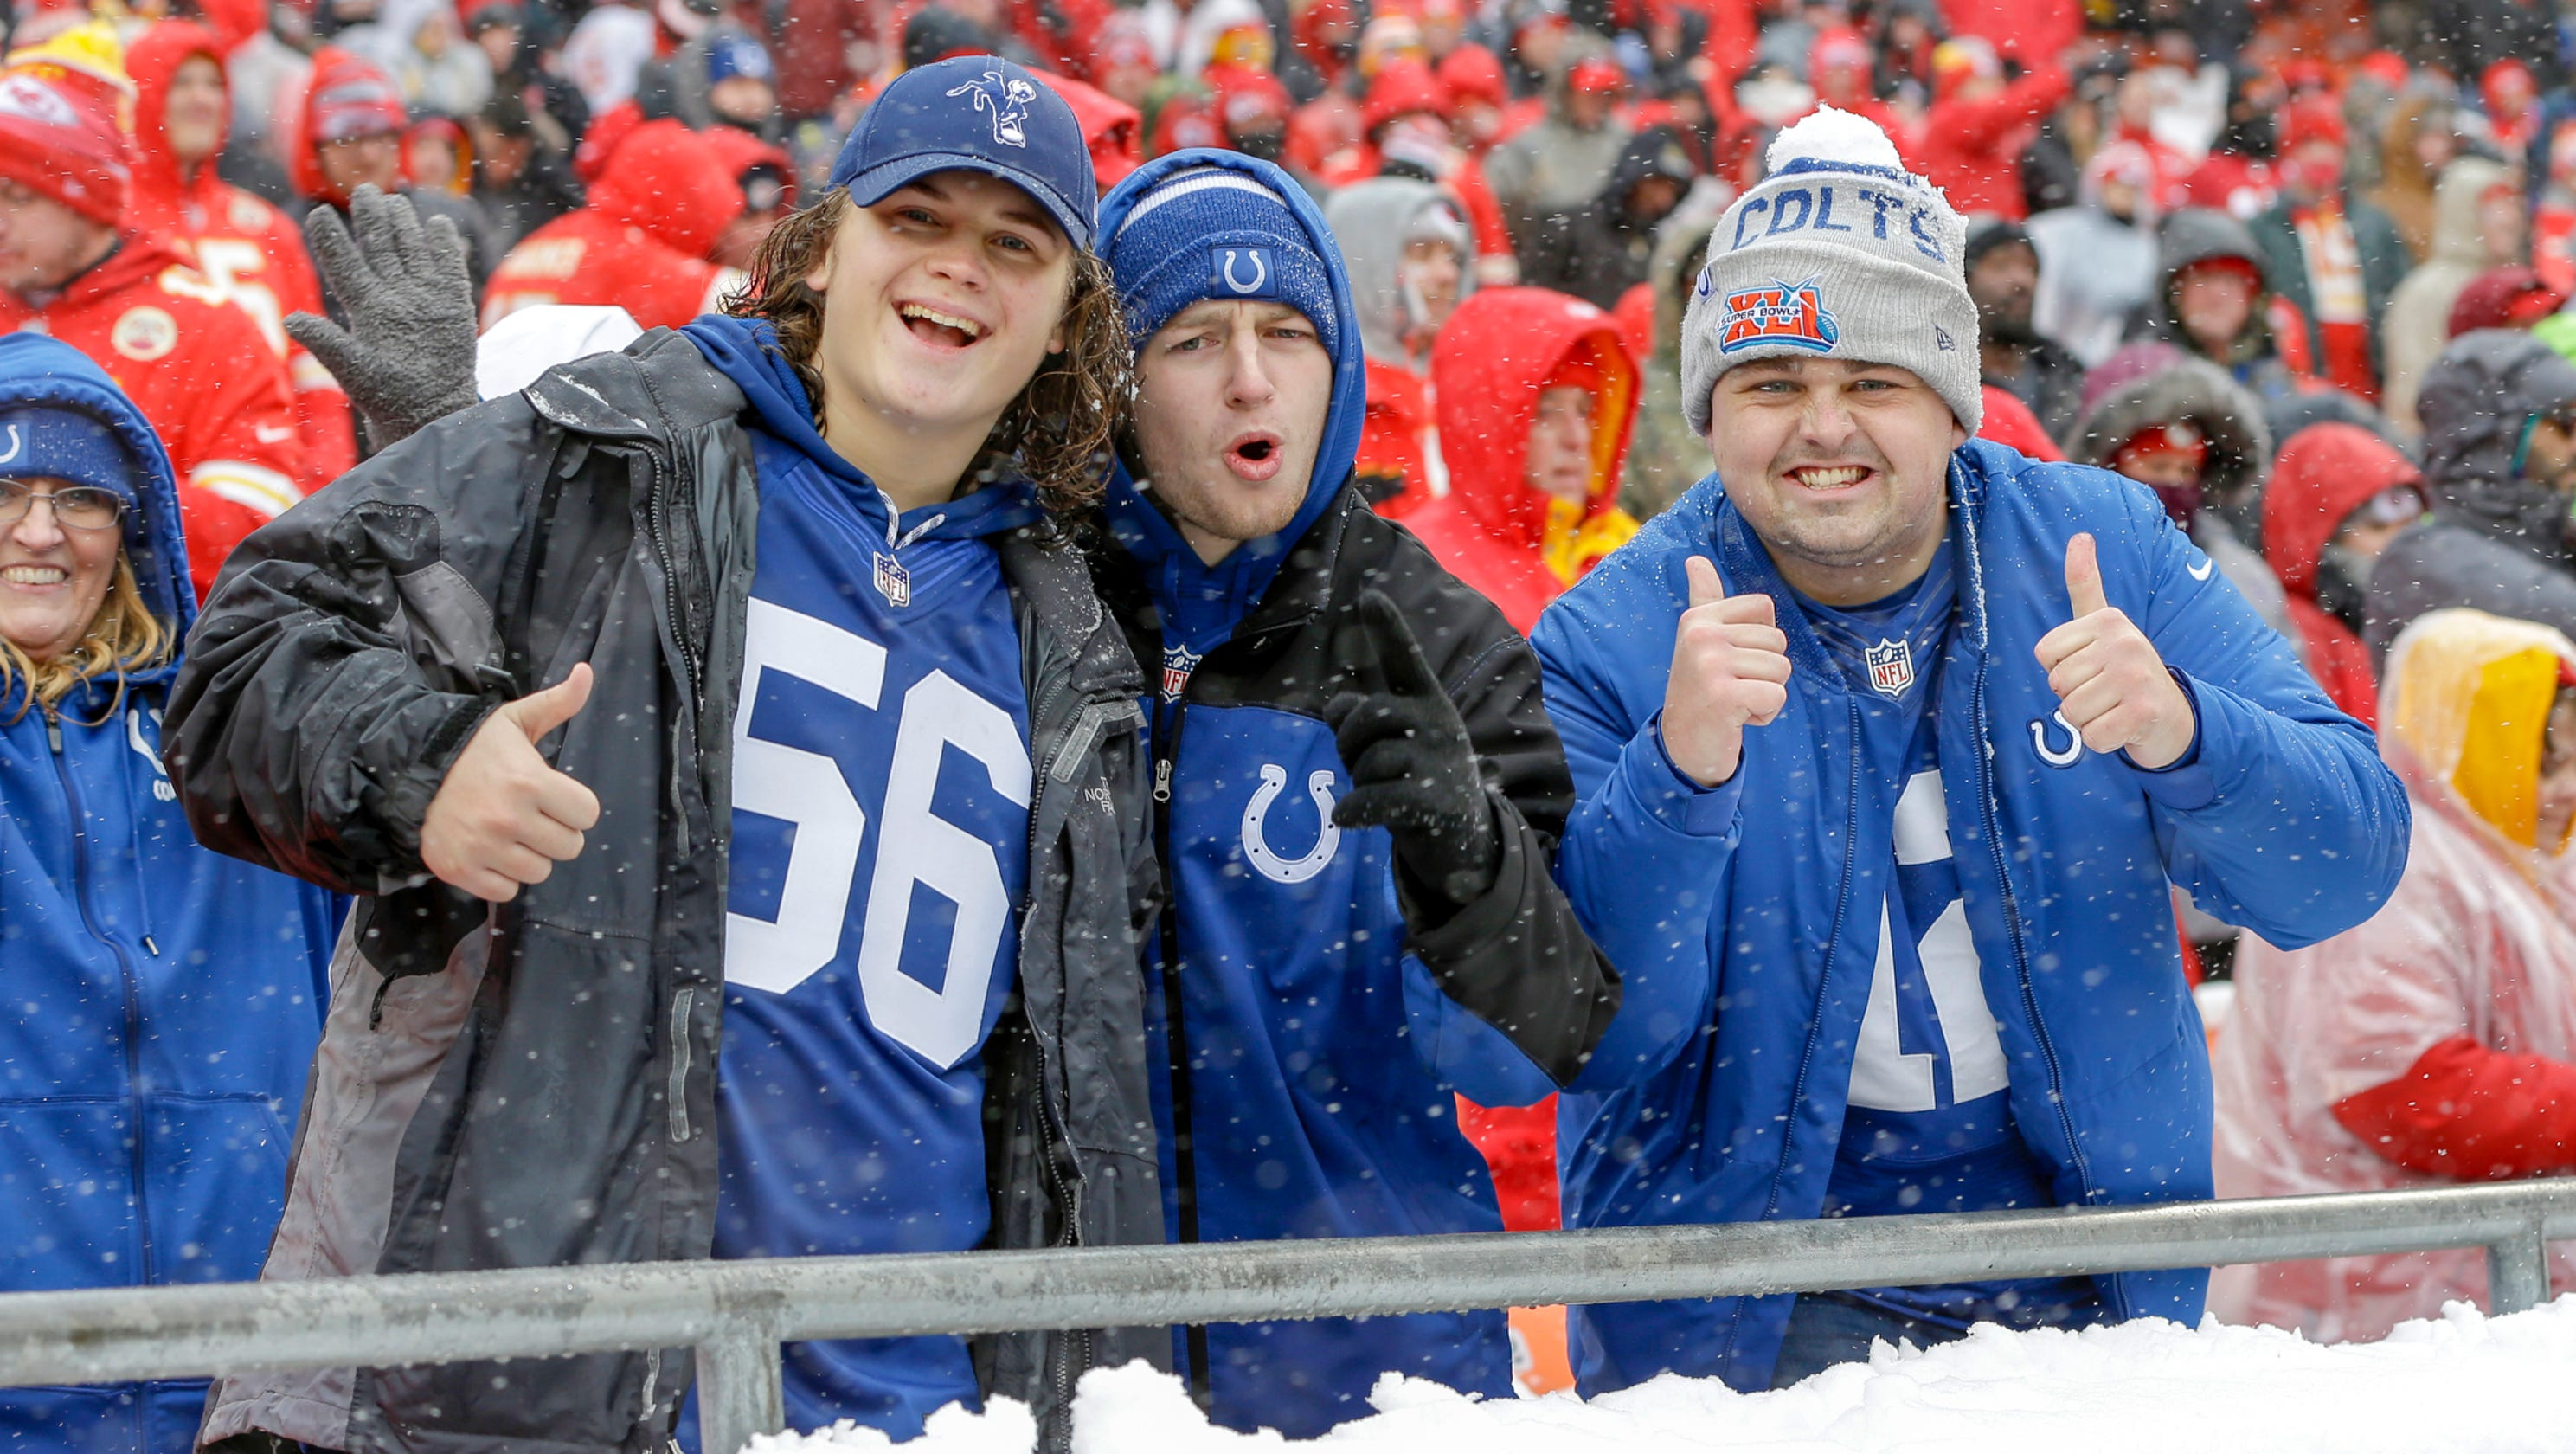 Colts season ticket sales expected to increase in 2019 e3848be7aa20